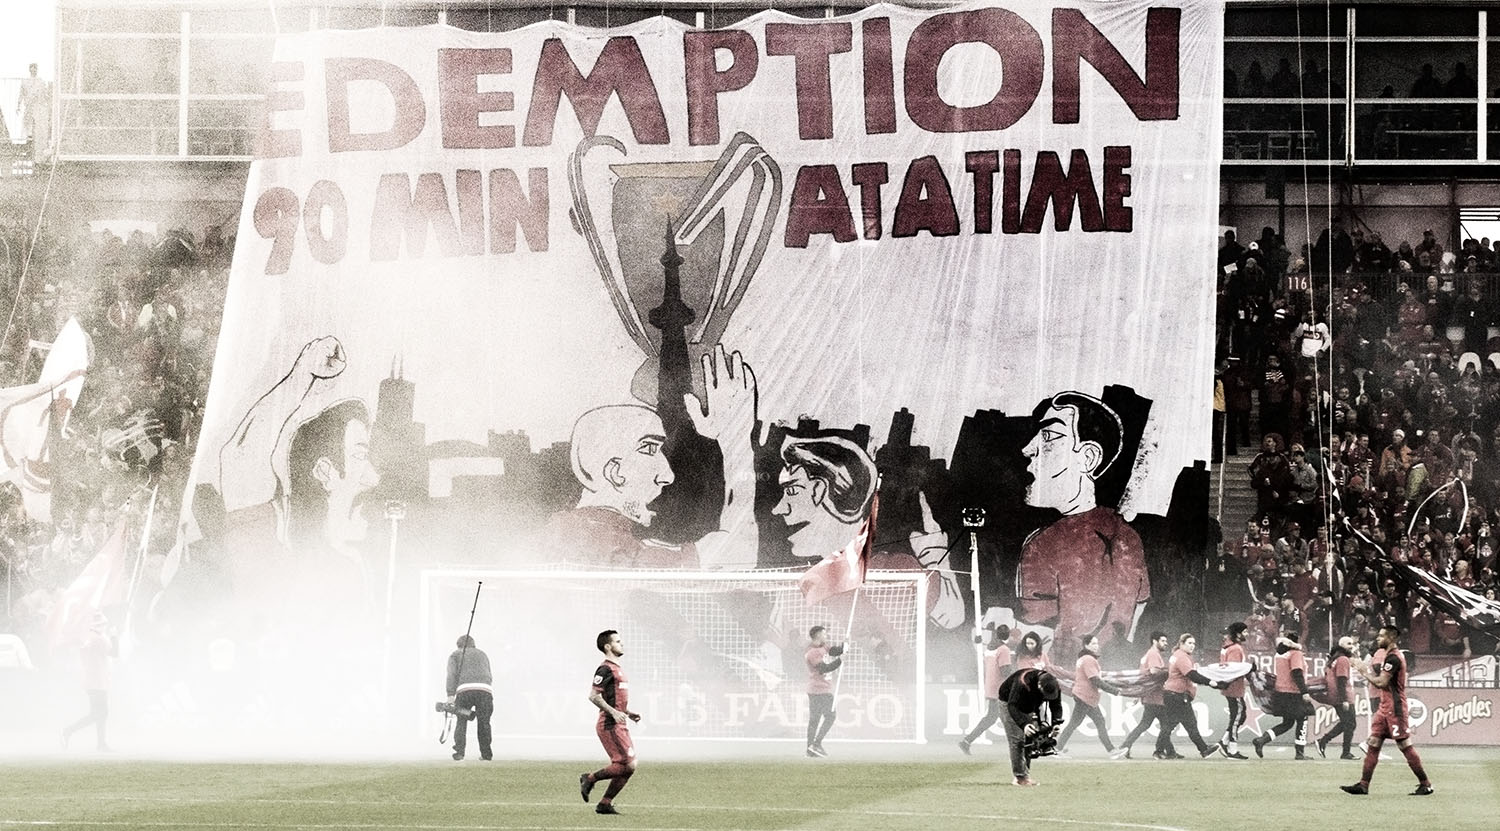 REDEMPTION 90 MIN AT A TIME TIFO made by the South End Supporter's groups ahead of a 2017 playoff match with the New York Red Bulls at BMO Field. Image by Dennis Marciniak of denMAR Media.